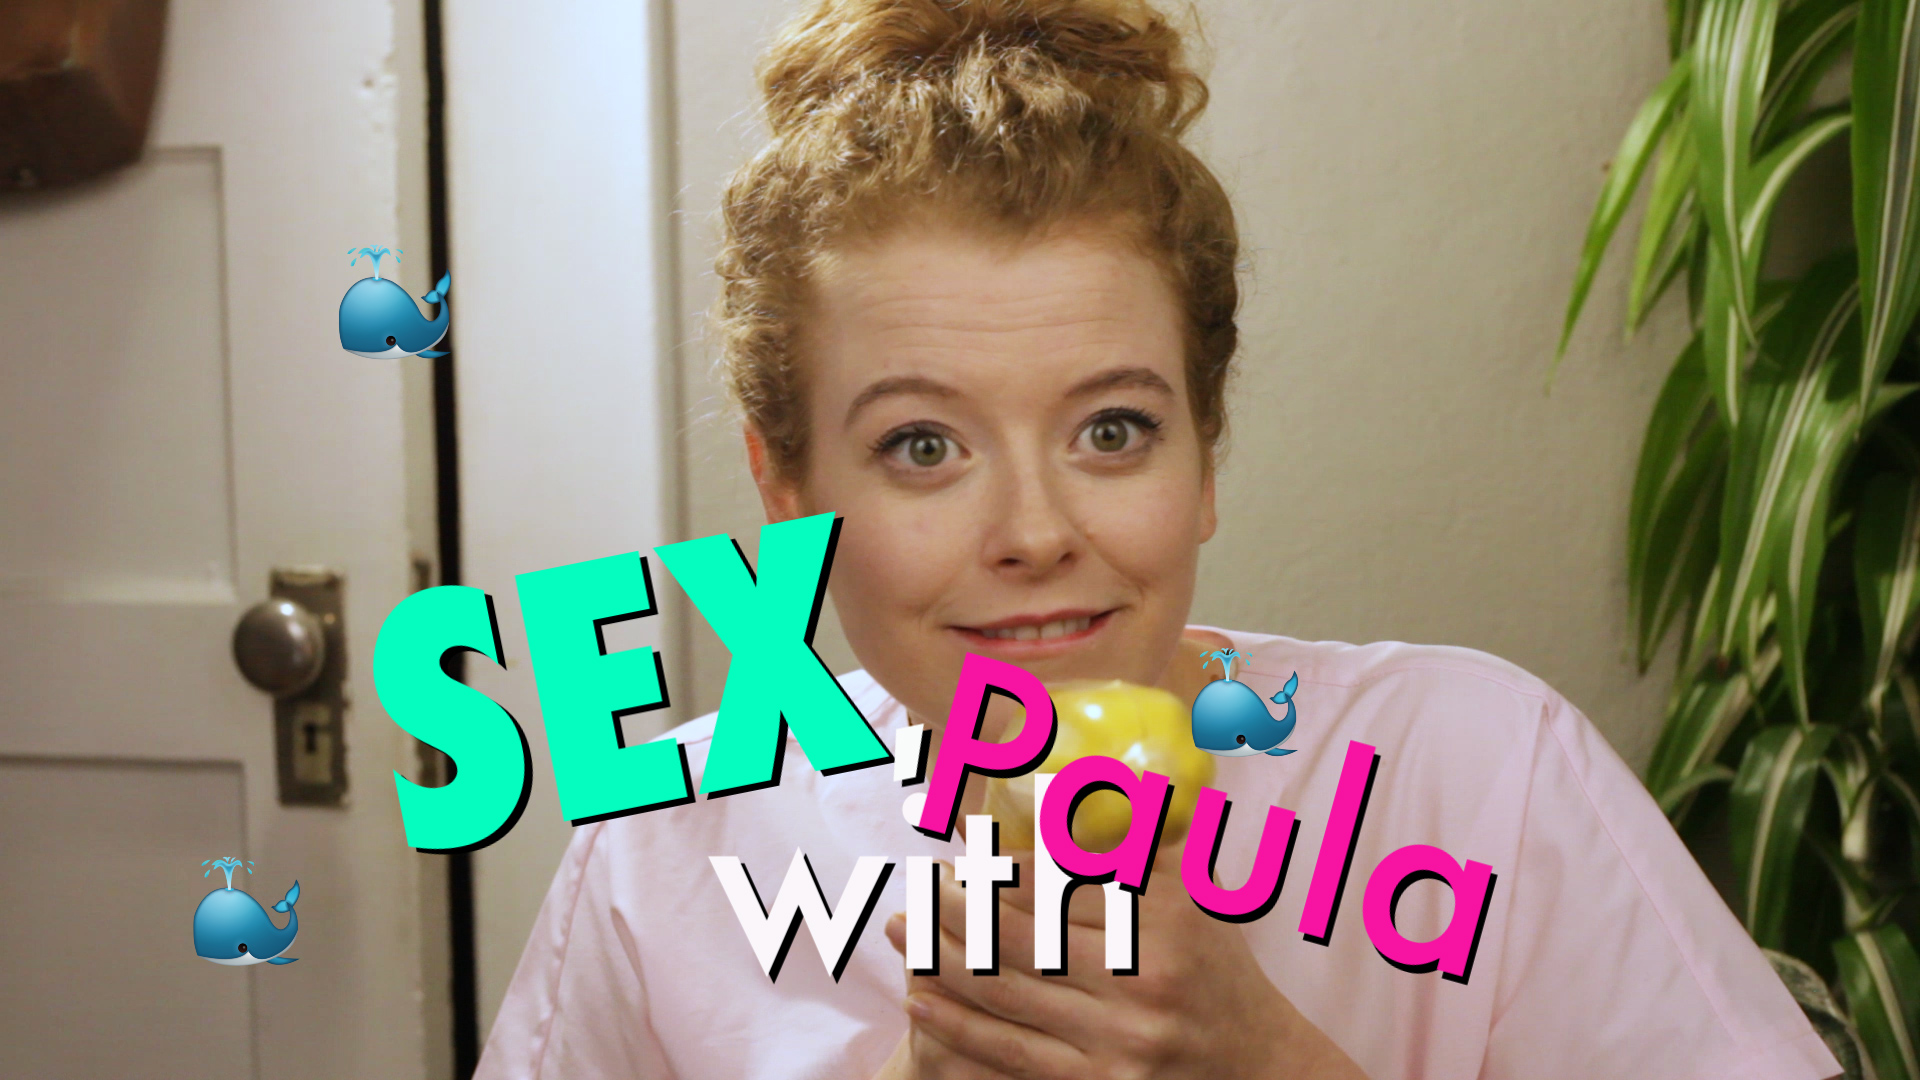 Paula Burrows in Sex, with Paula (2017)